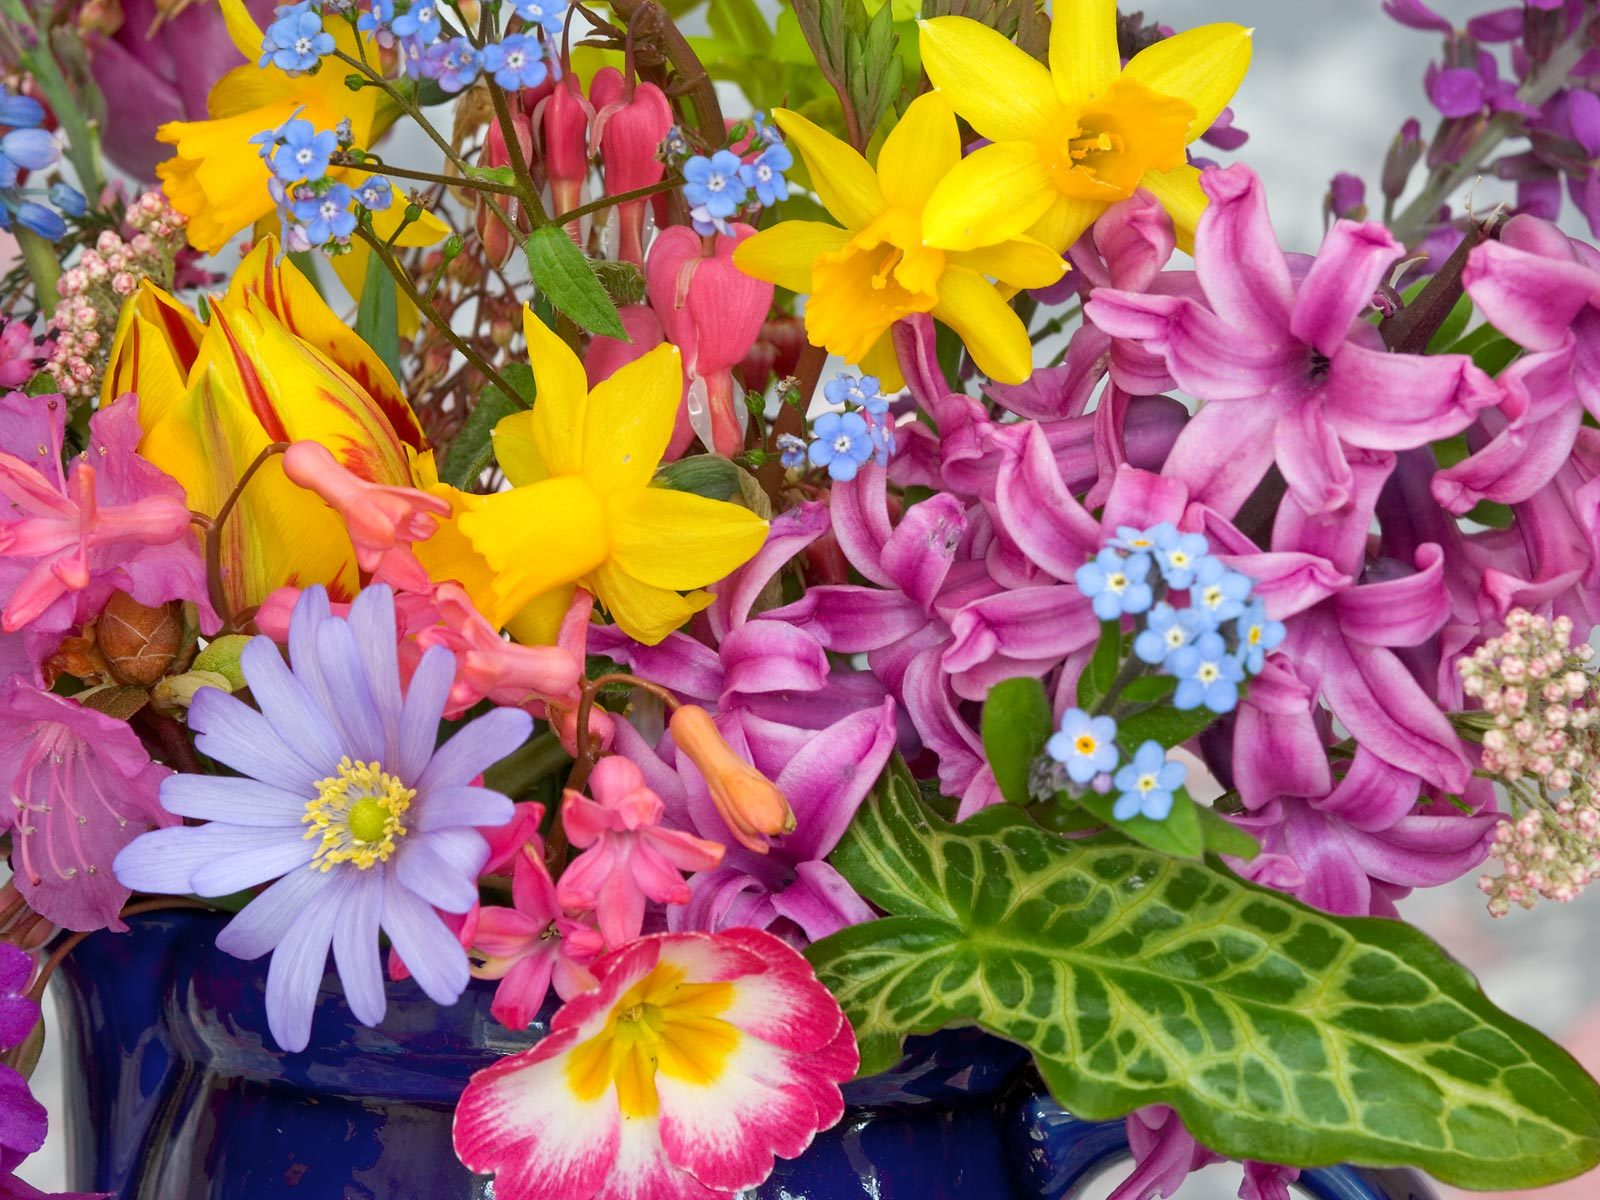 Free picture of spring flowers banner library Free Spring Flowers Wallpaper - WallpaperSafari banner library